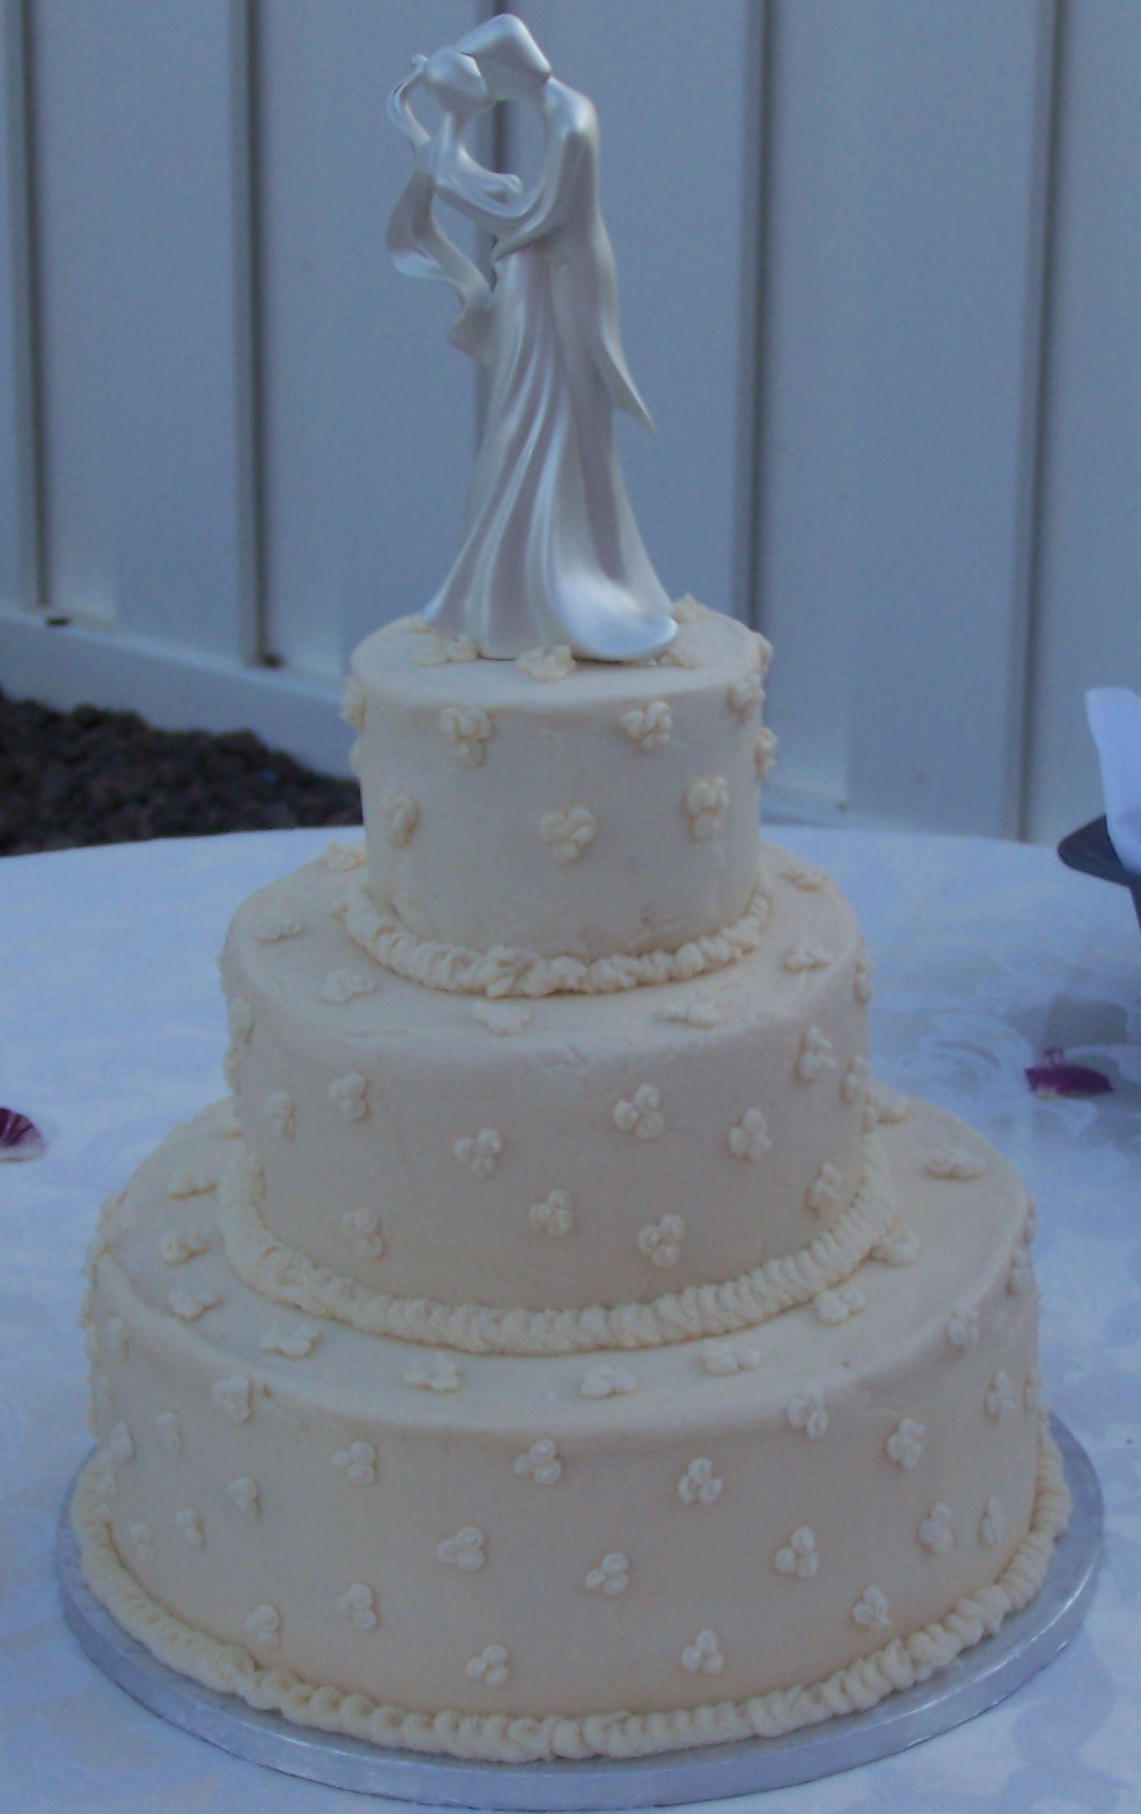 Specialty Wedding Cake Gallery 2   AZCAKEDIVA Custom One of a Kind     Call The AZCAKEDIVA Today  480 254 1252